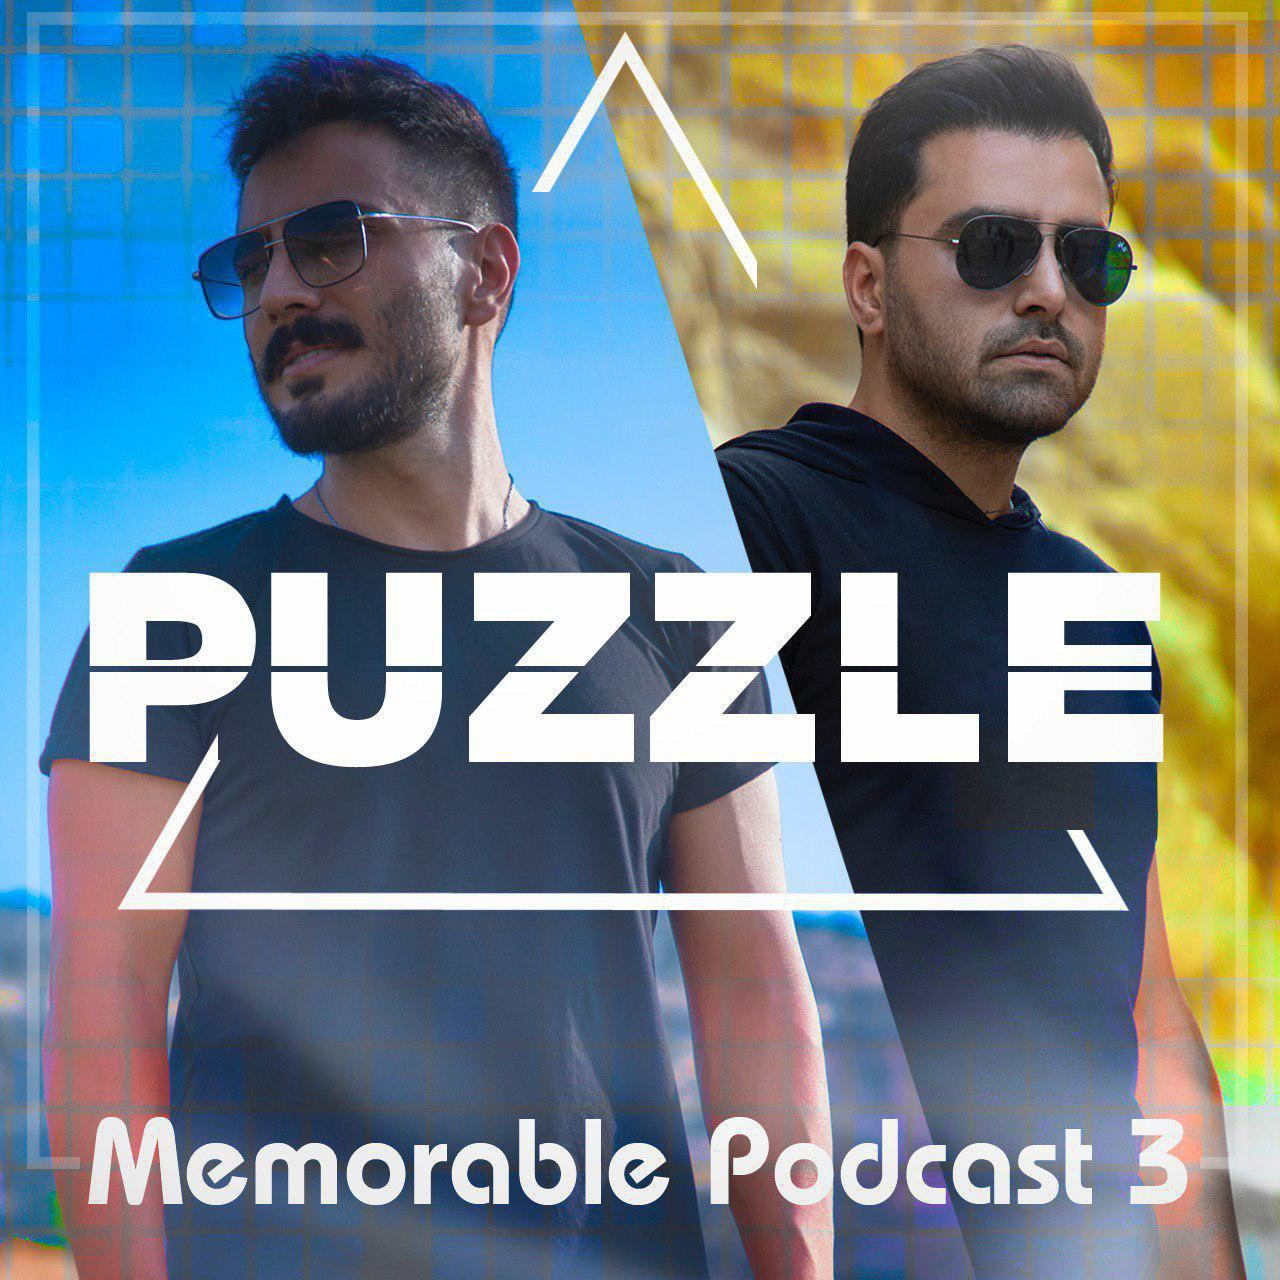 Puzzle Band – Memorable Podcast 3